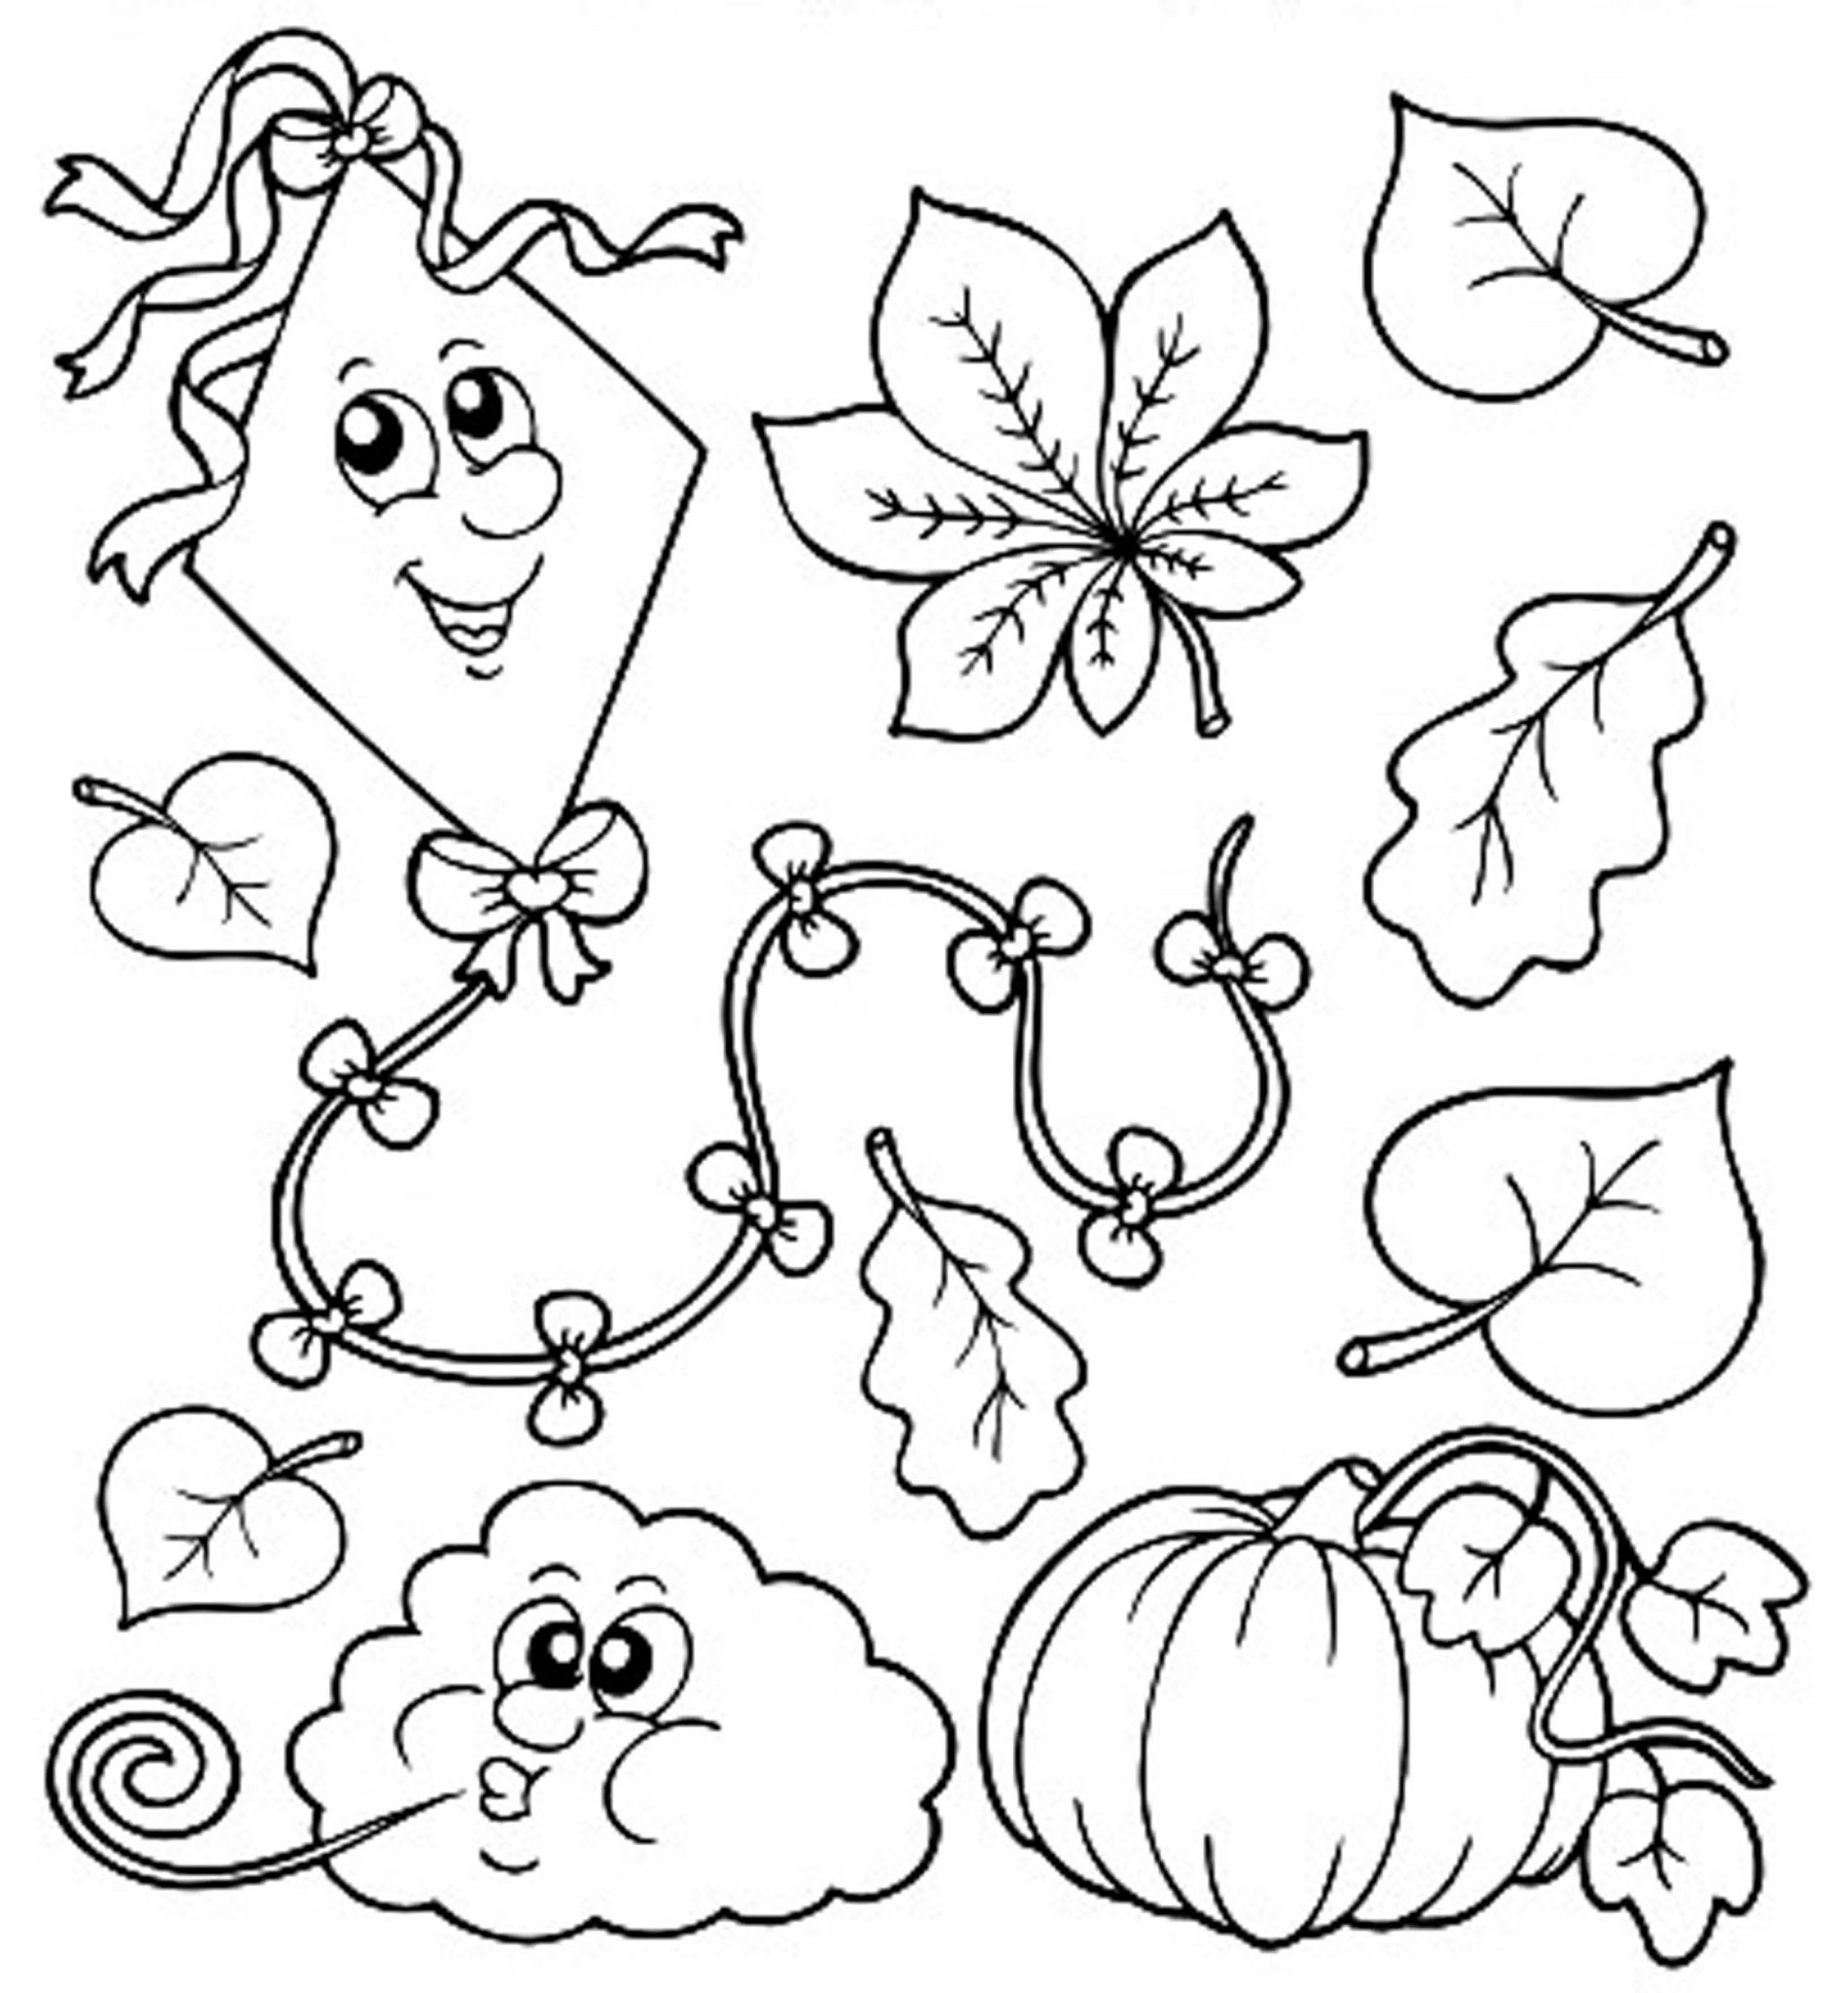 Fall Drawing For Kids At Getdrawings